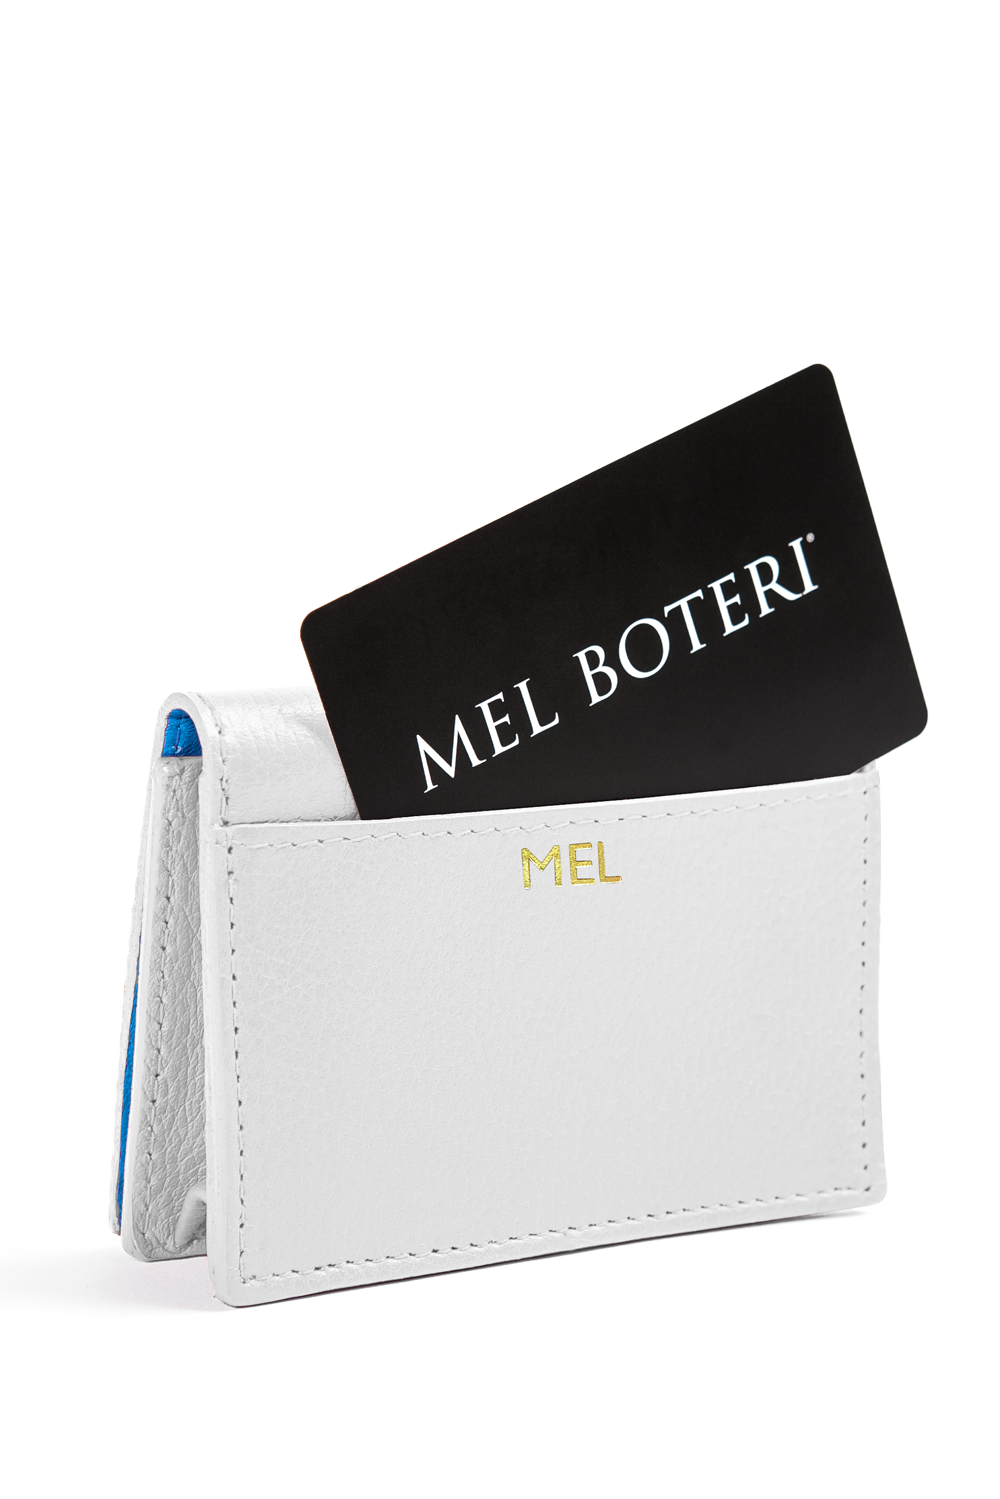 The Mel Boteri Leather Card Holder | White Leather With Gold Monogram | Mel Boteri Gift Ideas | Design Your Own